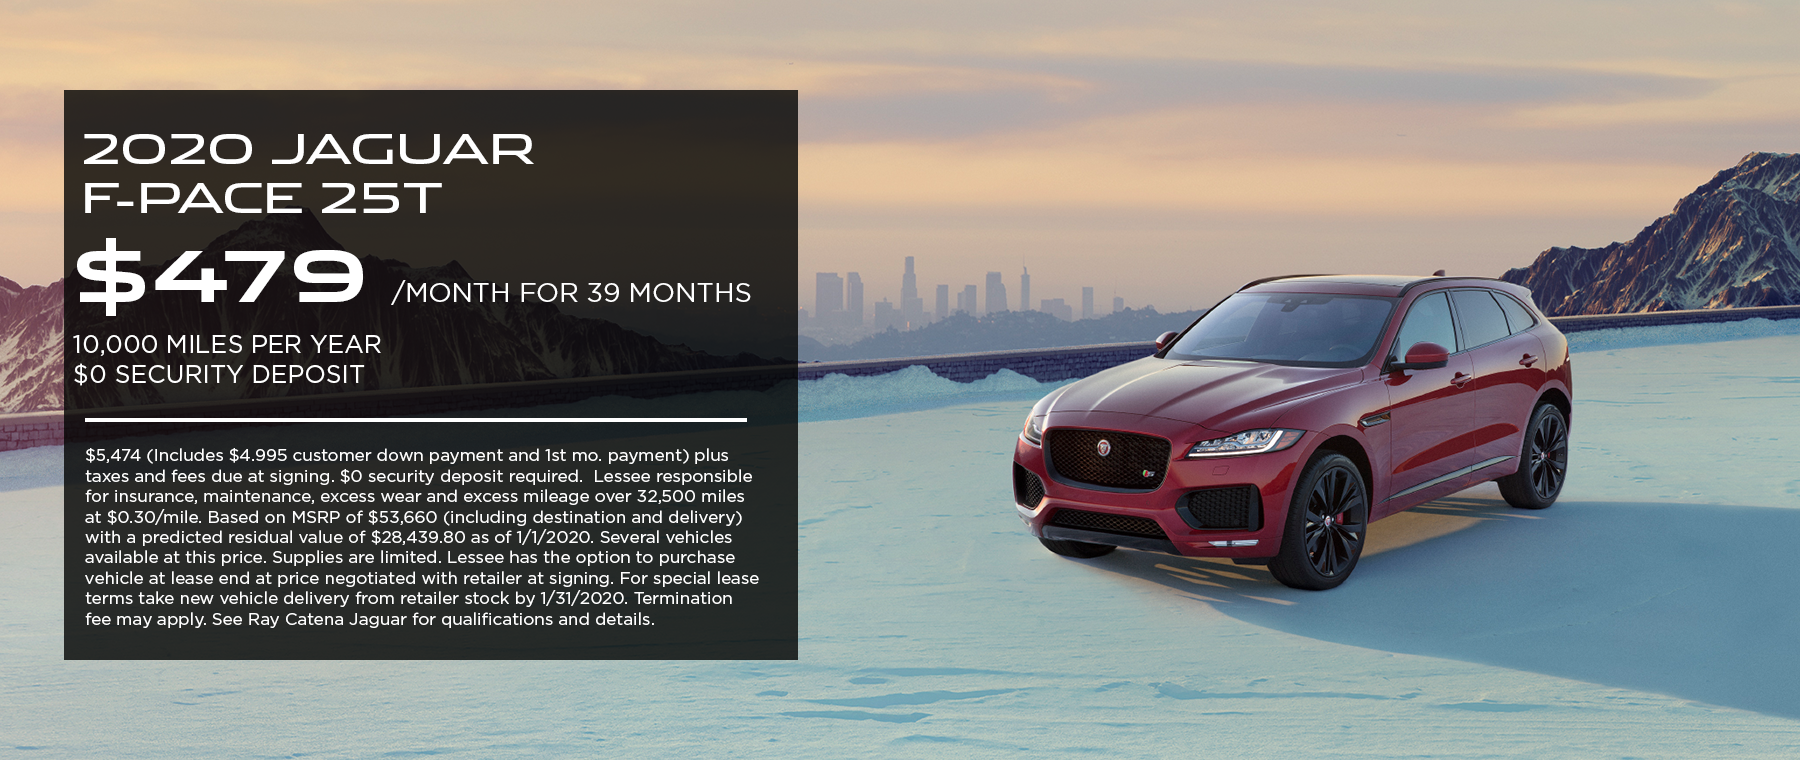 2020 Jaguar F-PACE 25t· $479/mo. · 39 mos. · 10,000 miles per year  $5,474 (Includes $4.995 customer down payment and 1st mo. payment) plus taxes and fees due at signing. $0 security deposit required.  Lessee responsible for insurance, maintenance, excess wear and excess mileage over 32,500 miles at $0.30/mile. Based on MSRP of $53,660 (including destination and delivery) with a predicted residual value of $28,439.80 as of 1/1/2020. Several vehicles available at this price. Supplies are limited. Lessee has the option to purchase vehicle at lease end at price negotiated with retailer at signing. For special lease terms take new vehicle delivery from retailer stock by 1/31/2020. Termination fee may apply. See Ray Catena Jaguar for qualifications and details. Click to view offer. Red F-PACE on snowy ground with city far in the background.